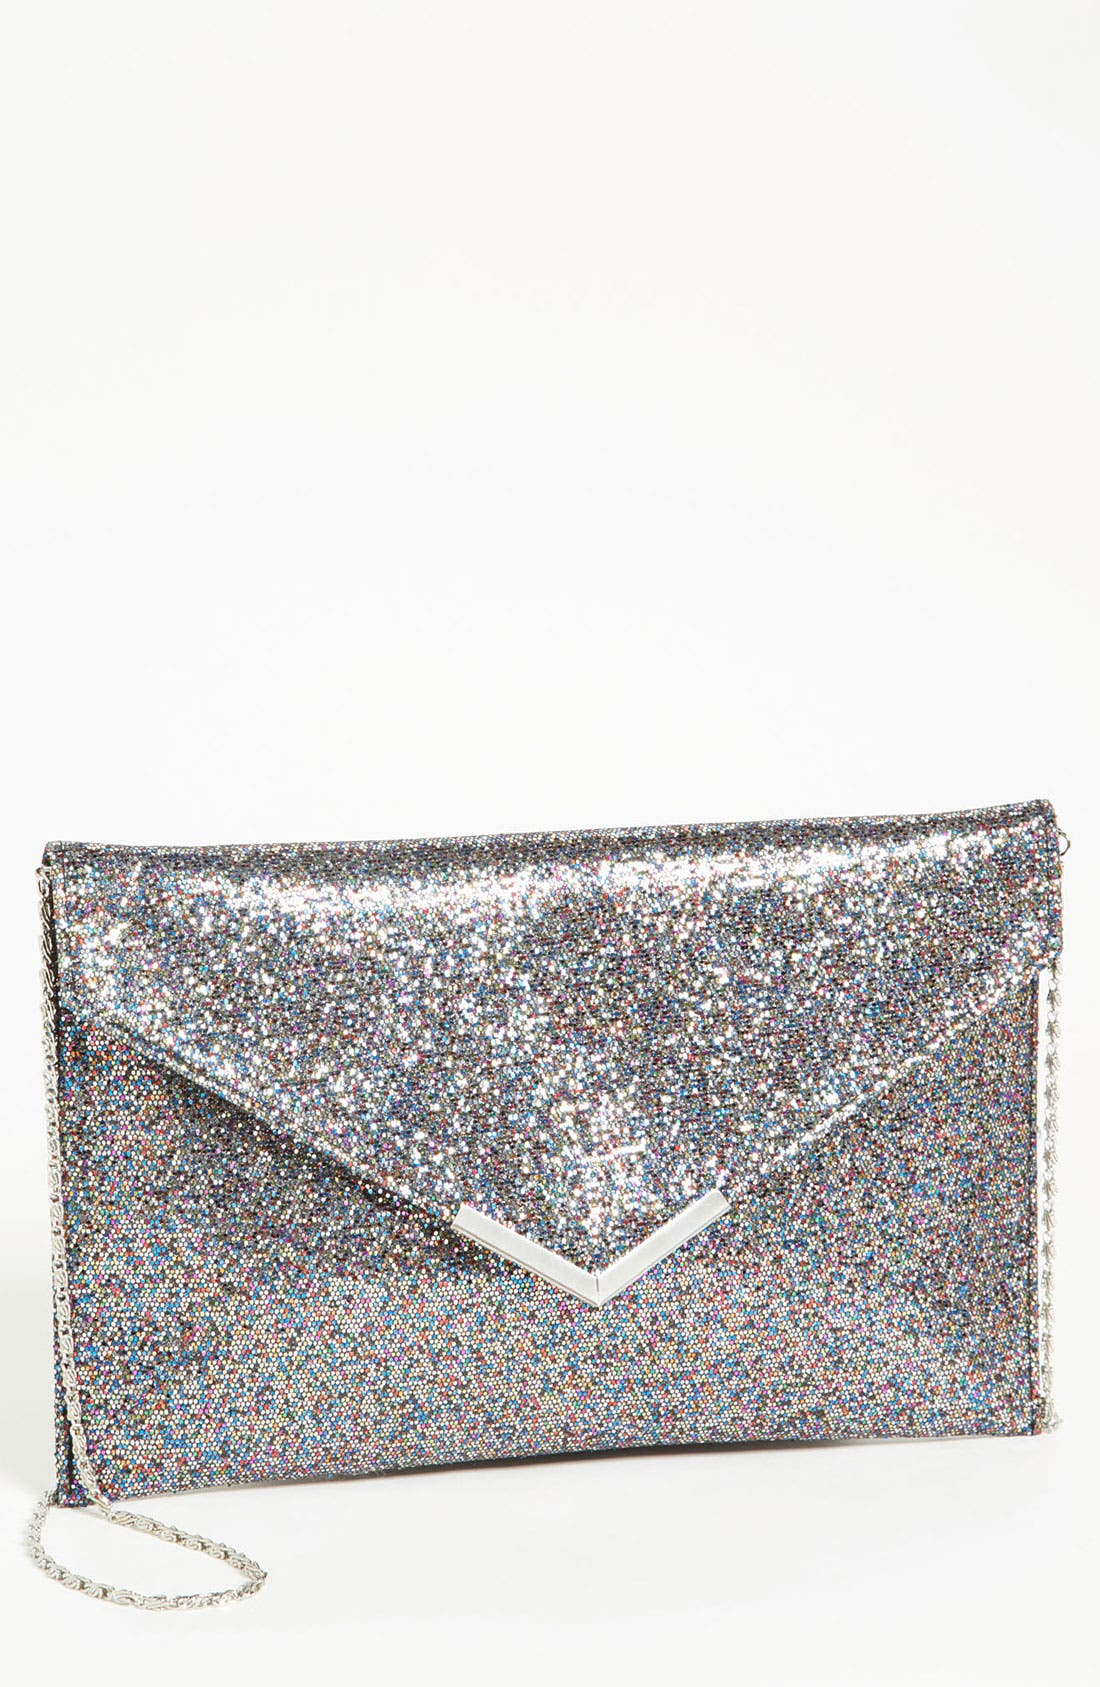 Main Image - Tarnish Glitter Envelope Clutch